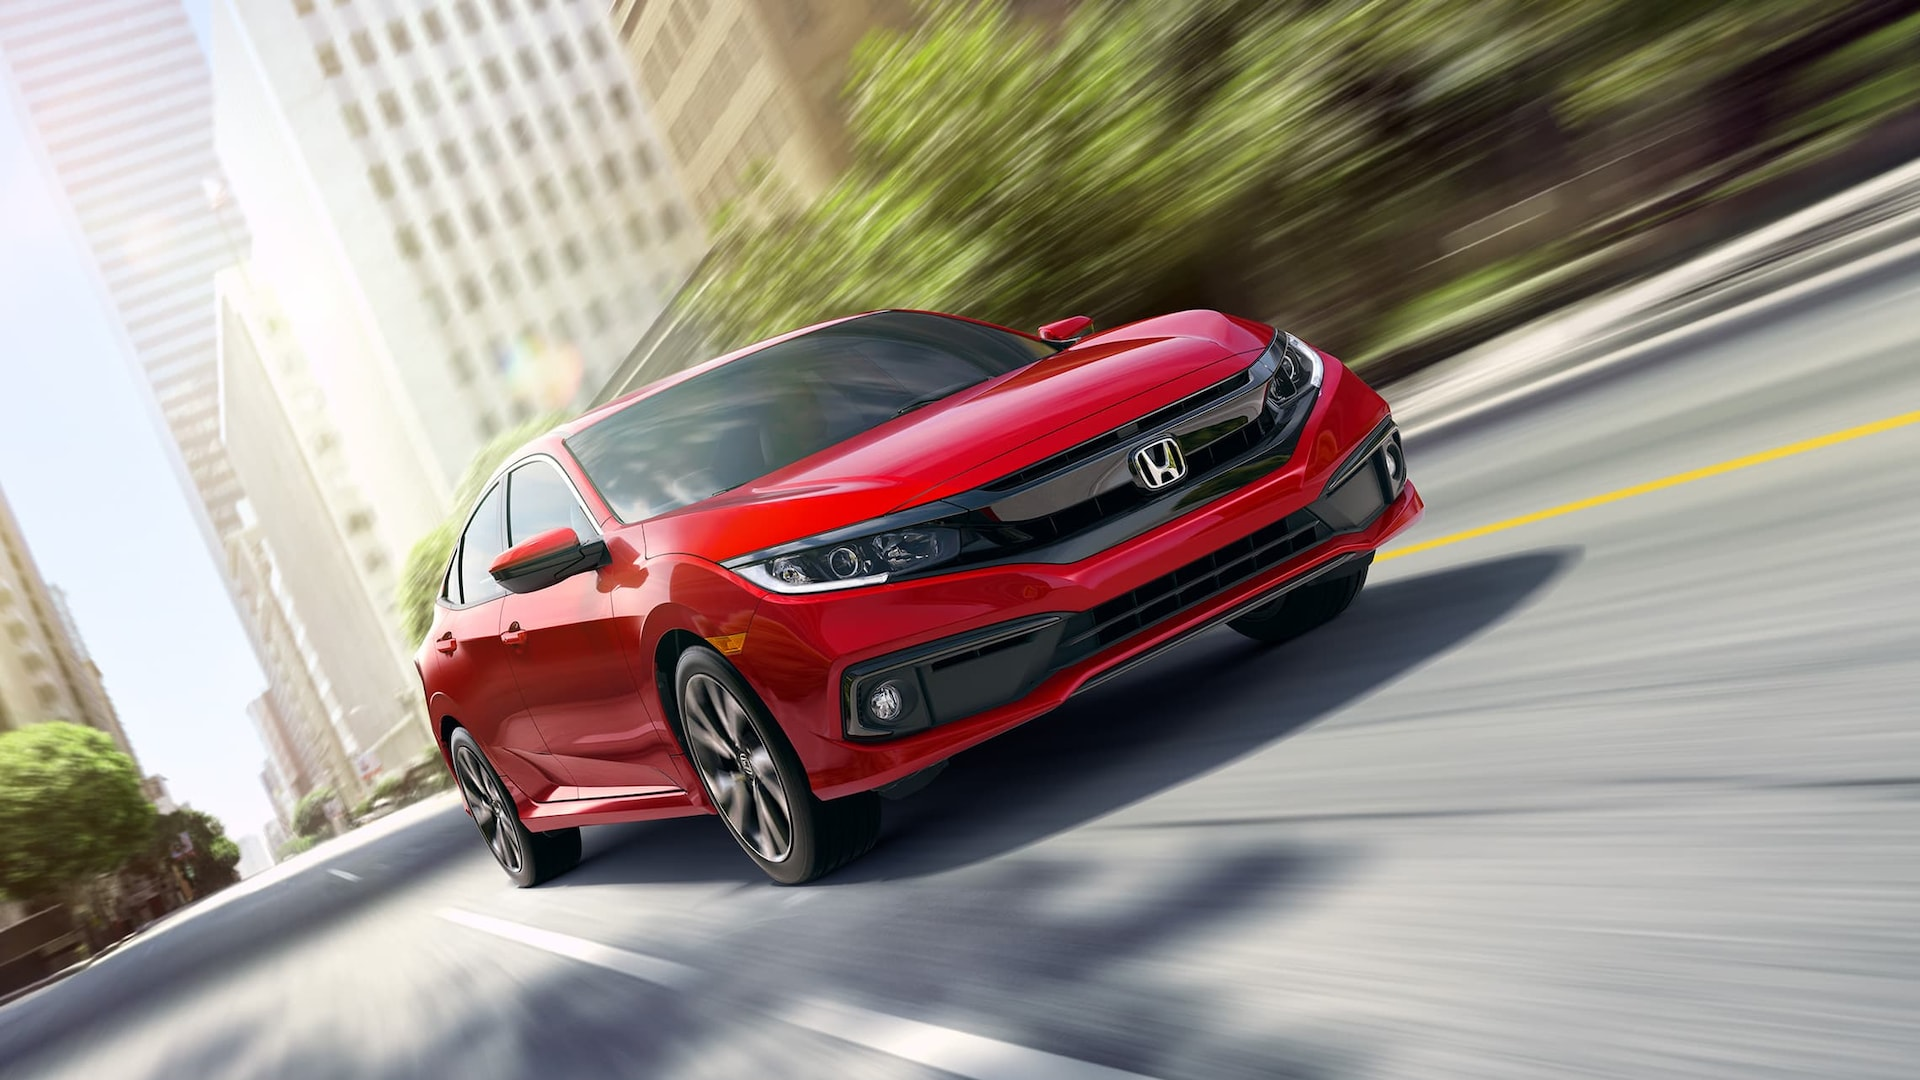 Front 3/4 passenger's side view of 2019 Honda Civic Sport Sedan in Rallye Red driving through city environment.